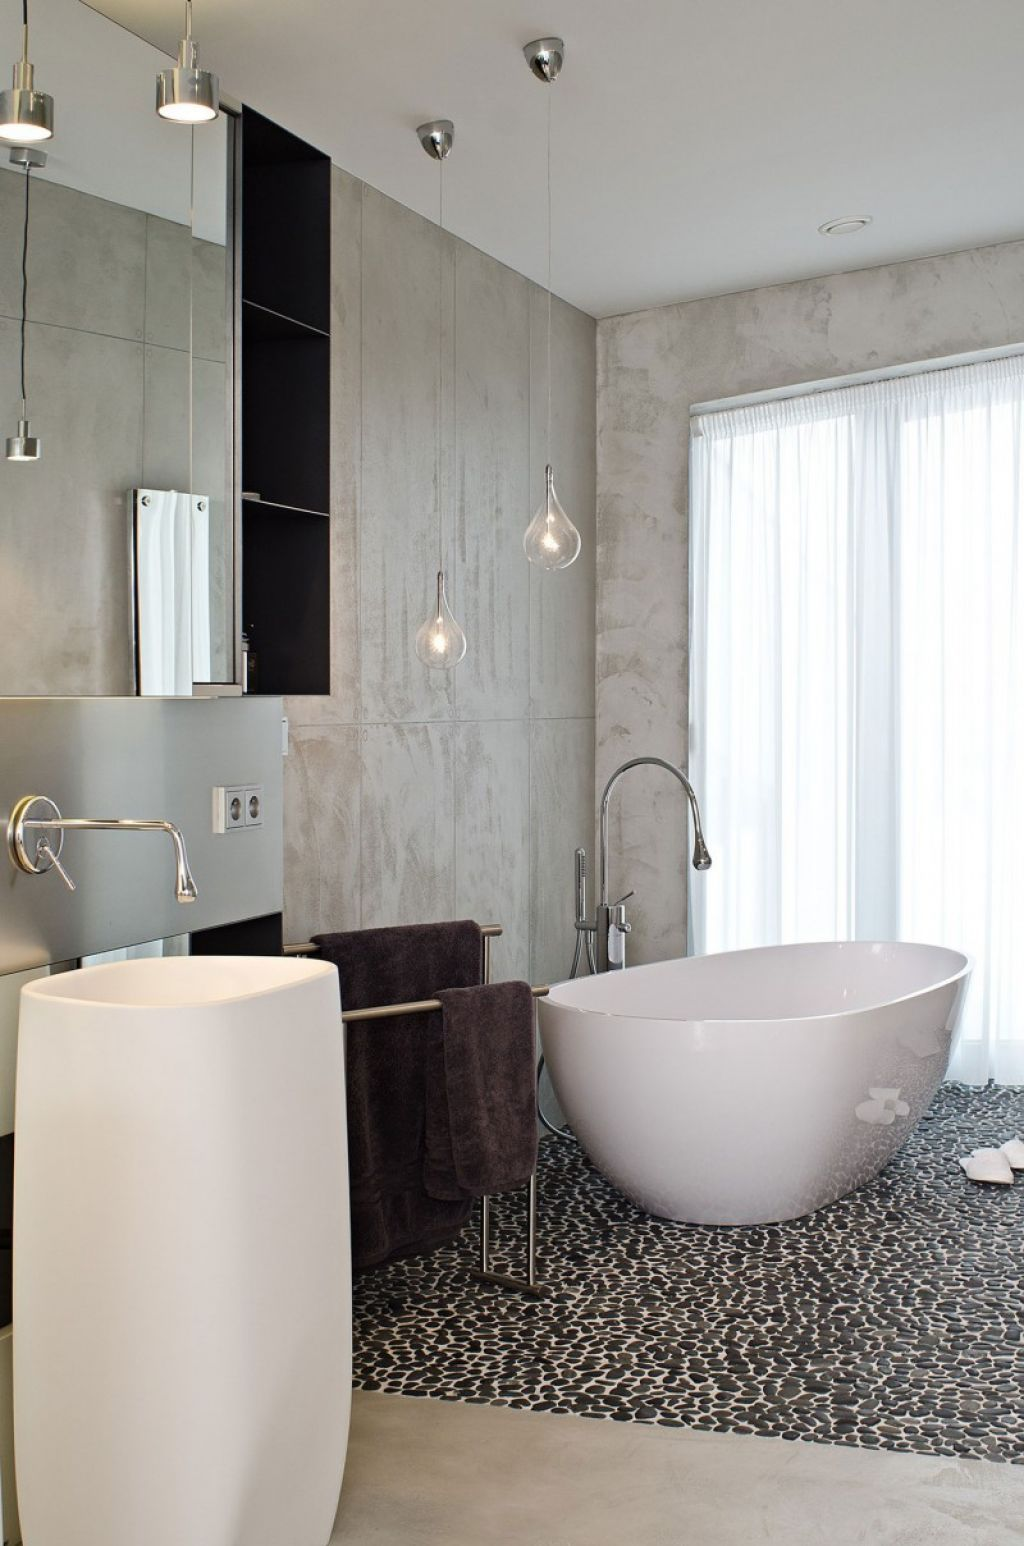 Minimalist White Porcelain Bathtub For Small Bathroom Some The Best Samples Of Minimalist Modern Tubs For Small Bathrooms